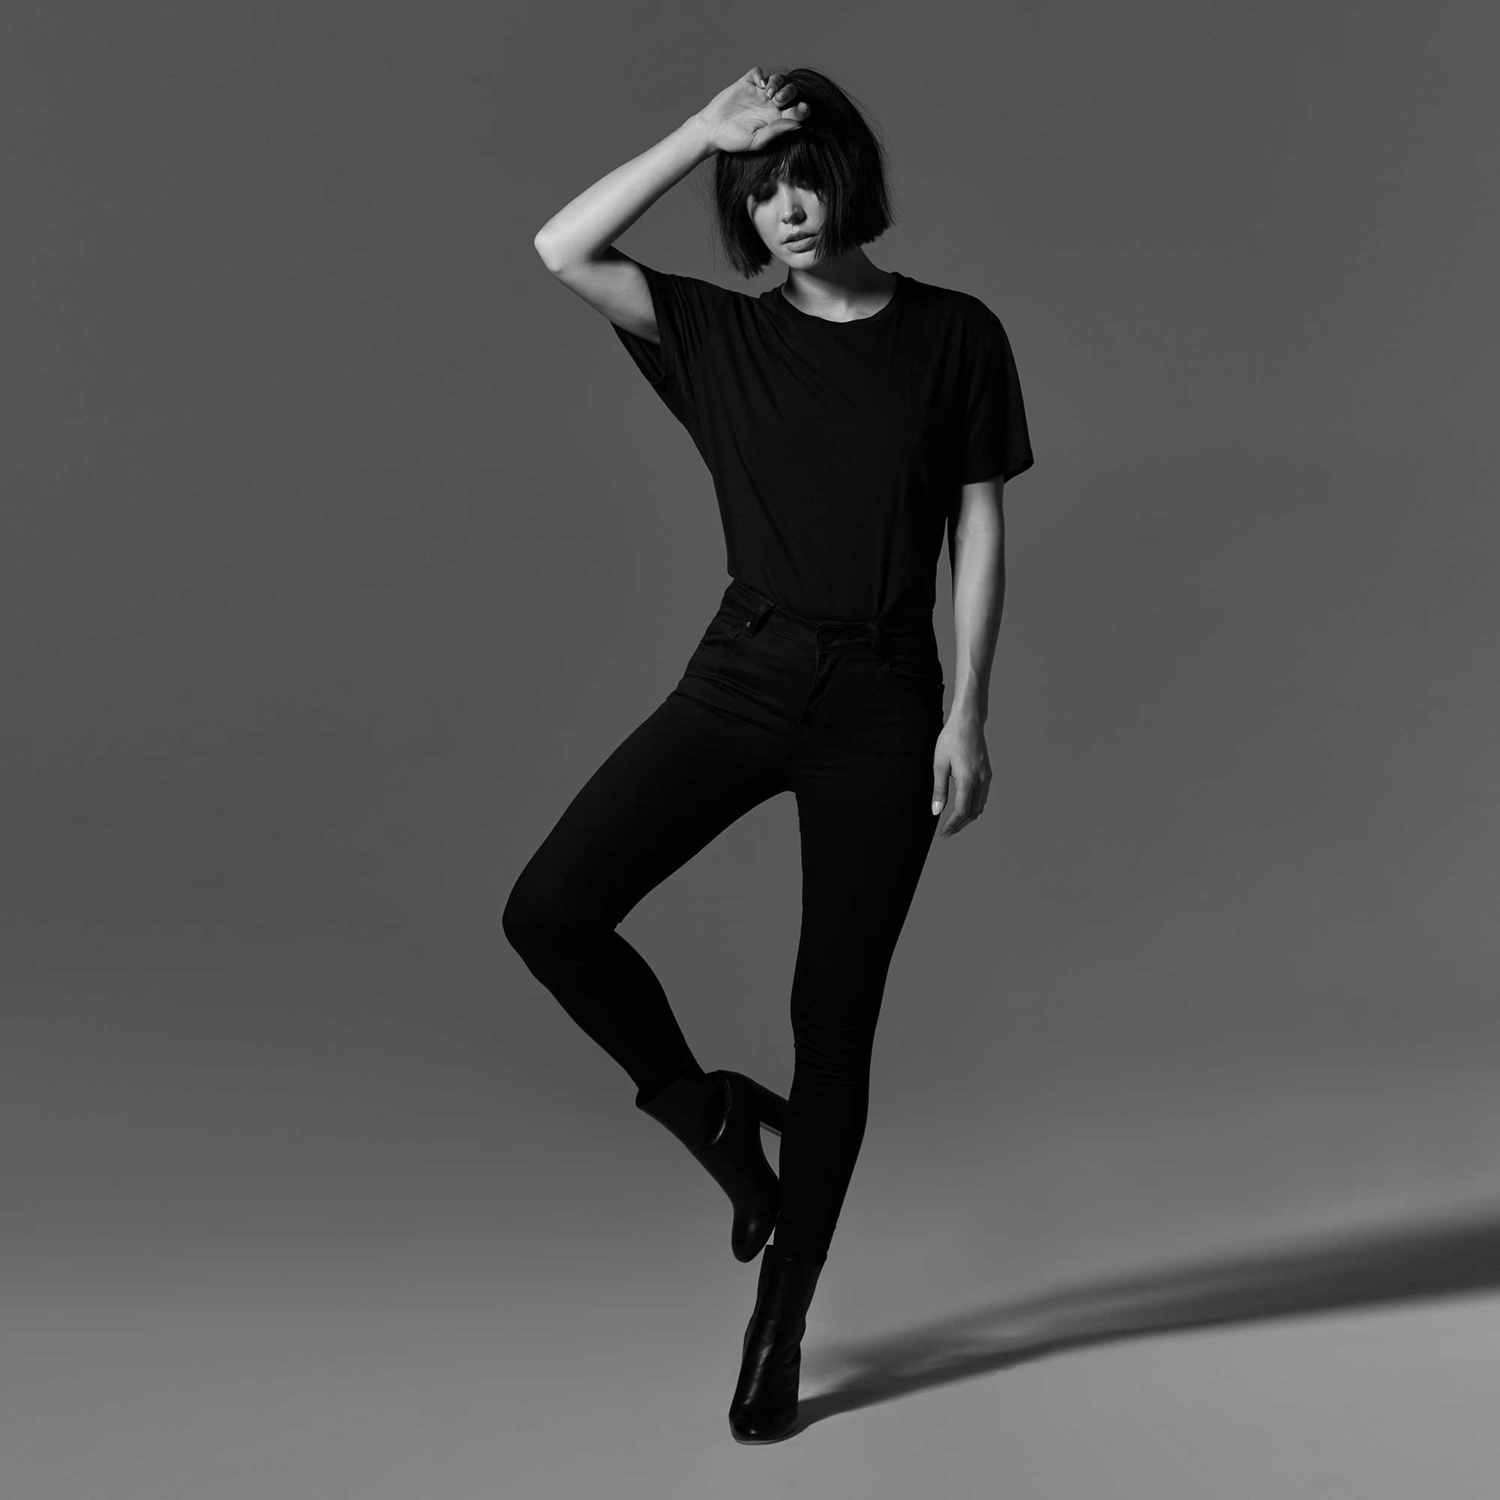 f8d1490d0892 Womens High Rise Skinny Jeans In Black $85 | DSTLD